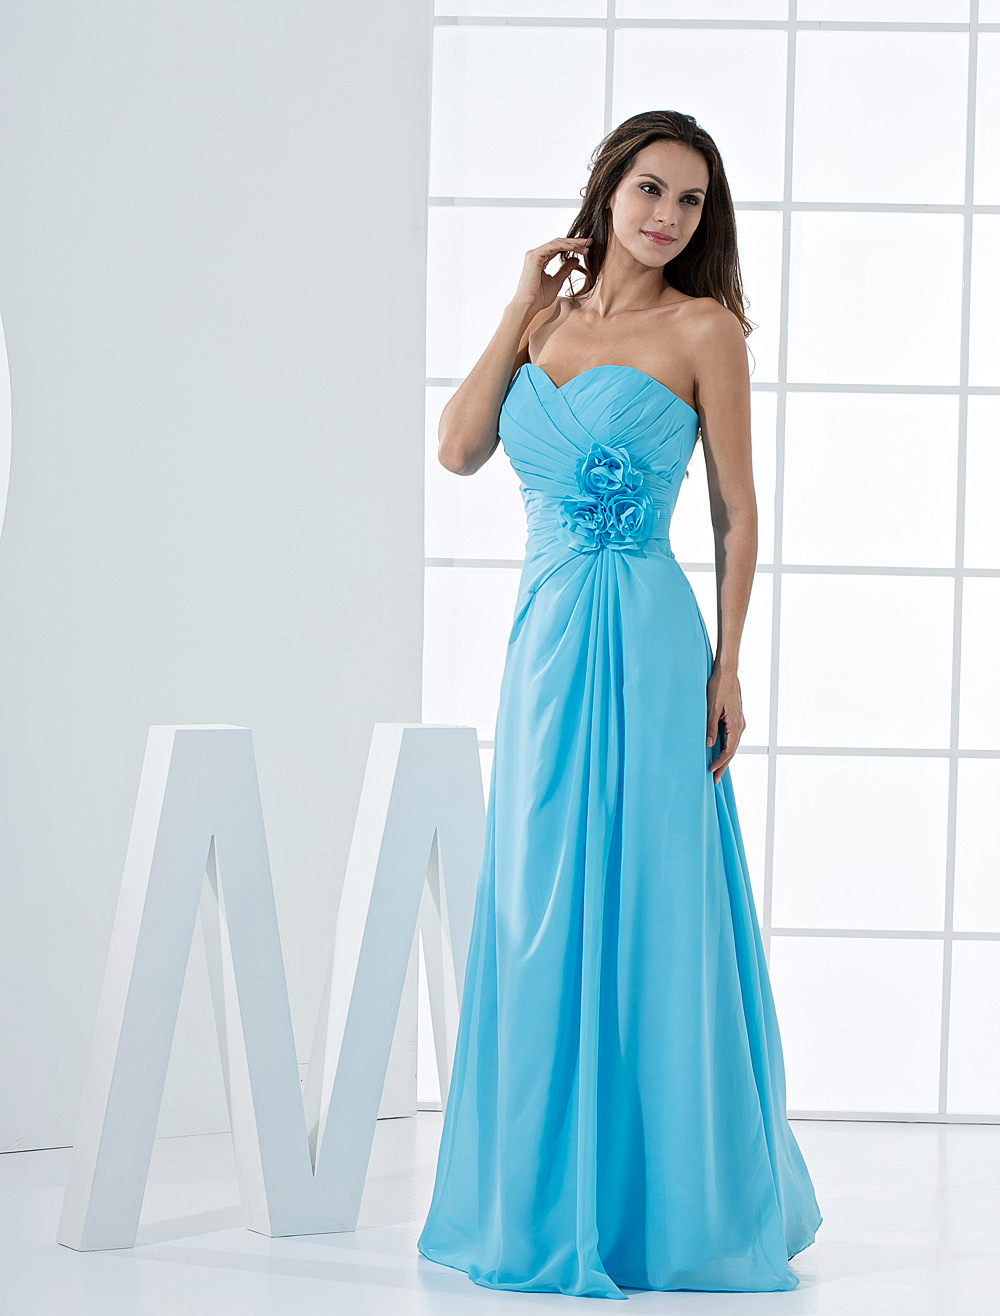 Wonderful Blue Strapless A-line Maxi Chiffon Bridesmaids Dress